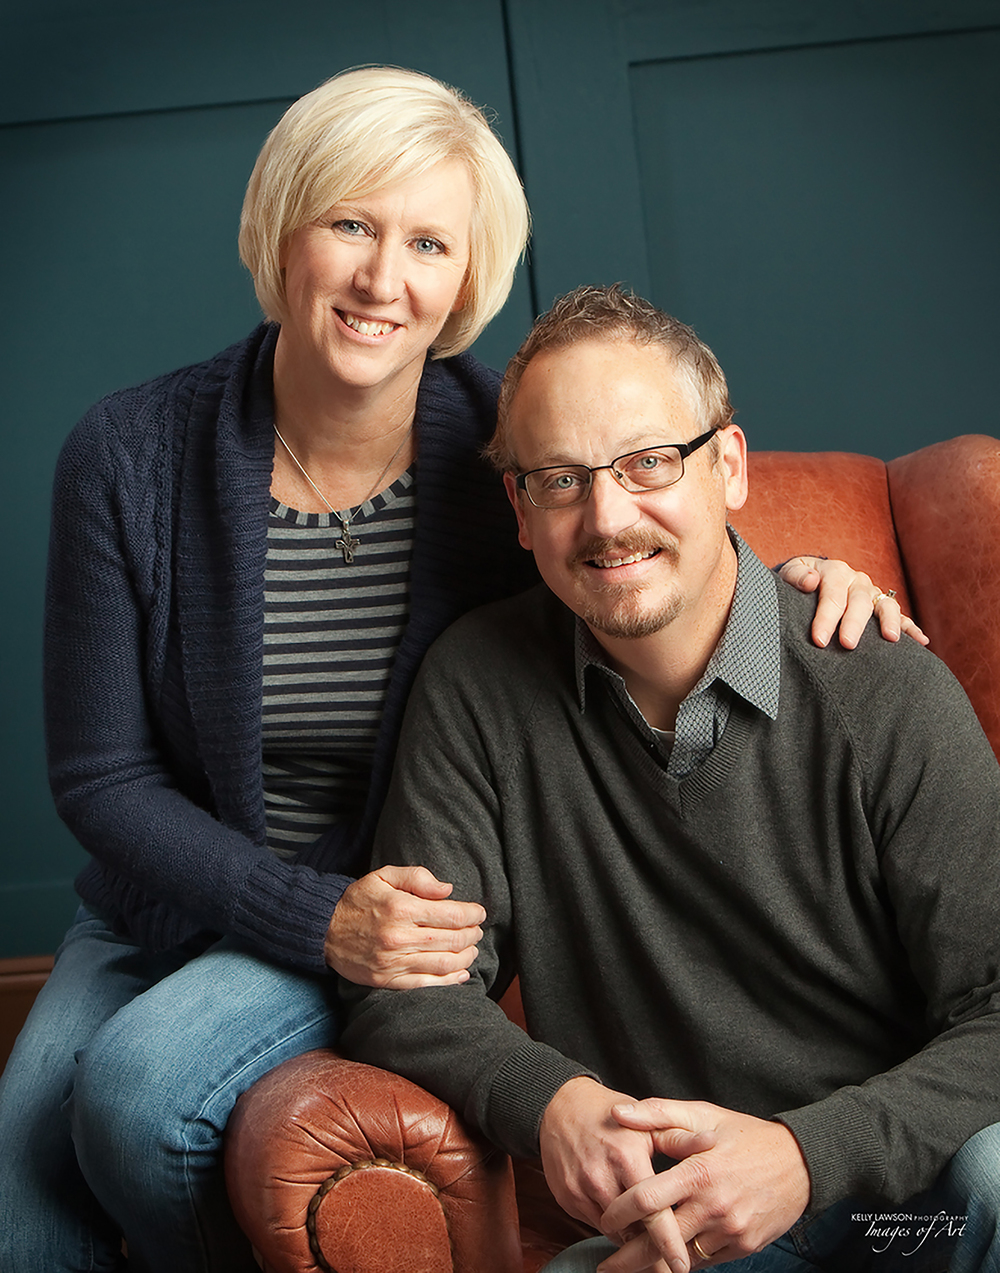 God's Resort Executive Director Jay St Clair with his wife, Operations Director Julie St. Clair.